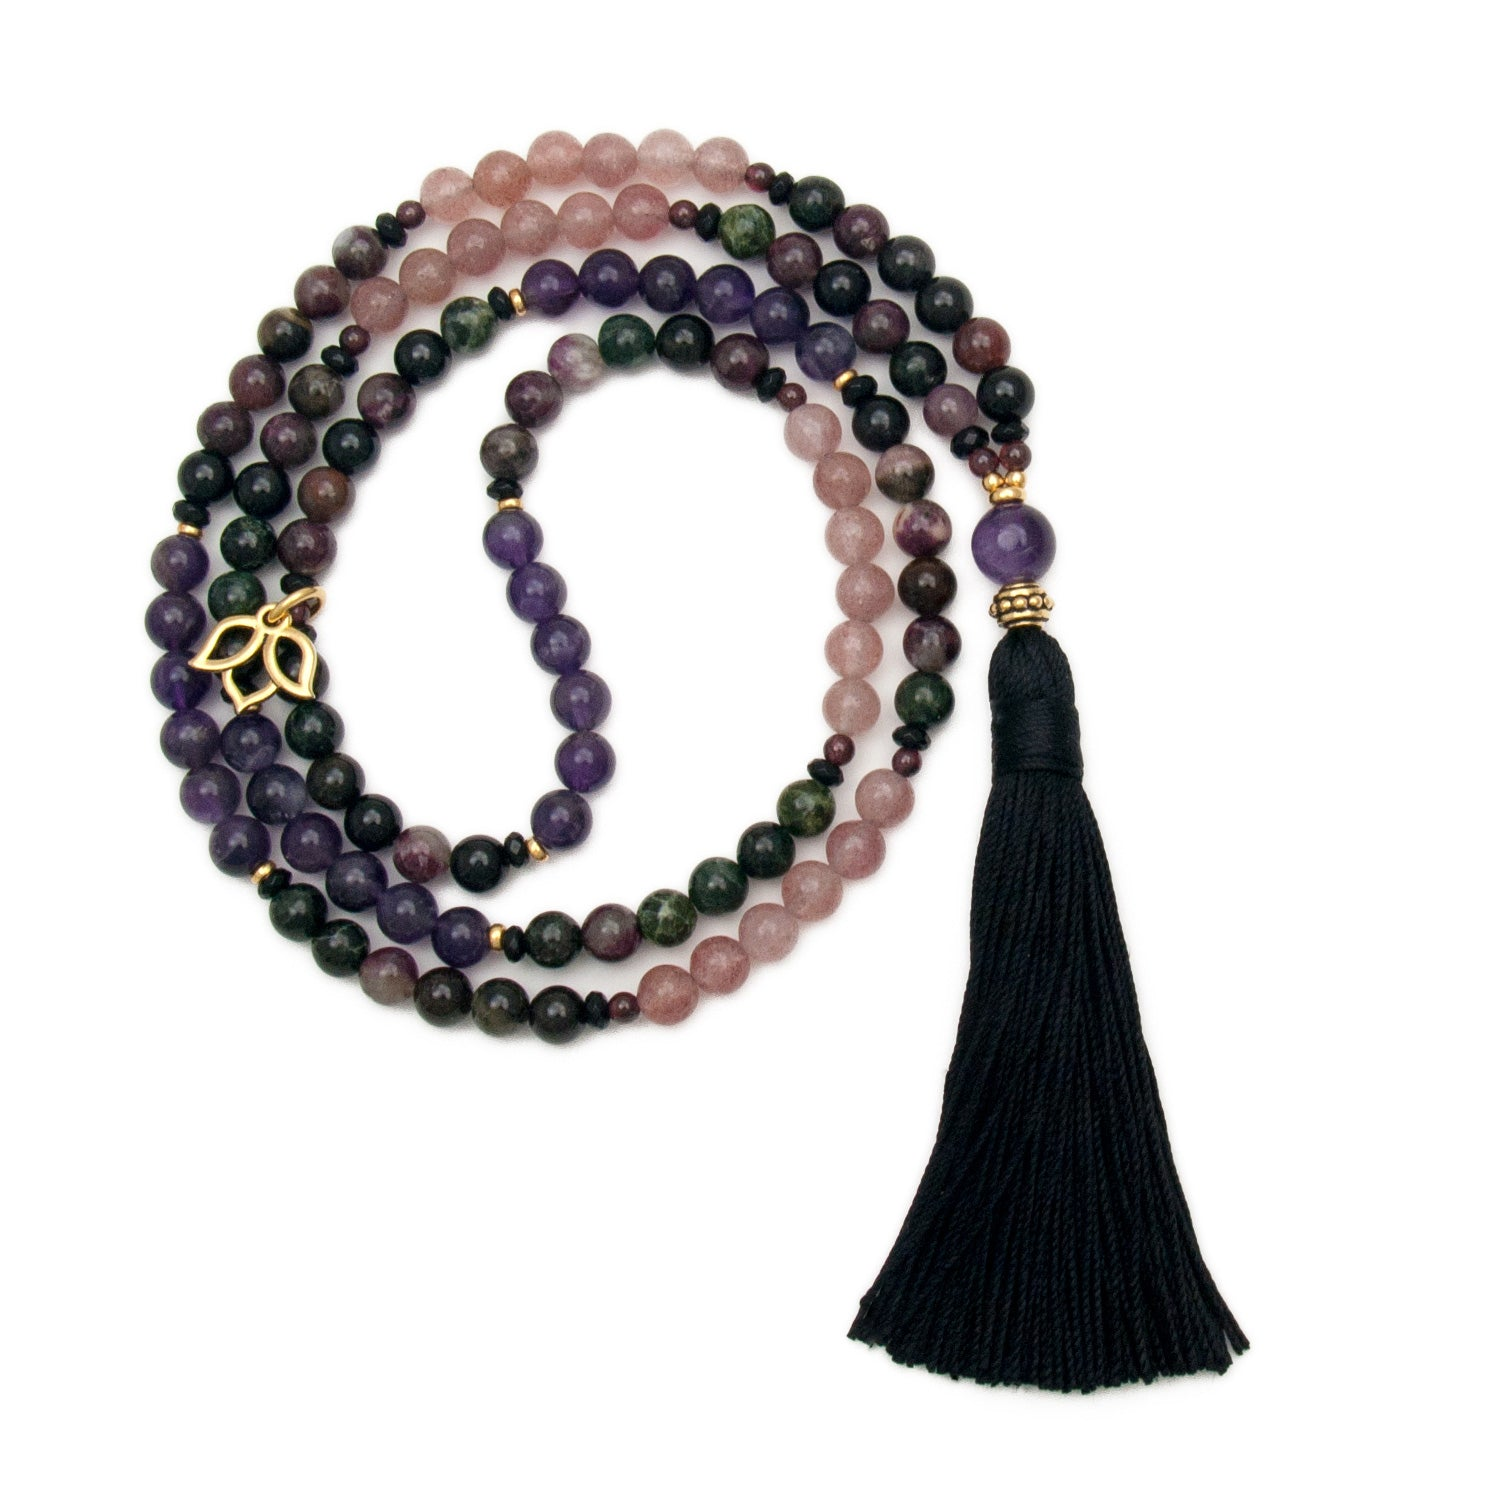 Cosmic Harmony Mala Necklace by Golden Lotus Mala